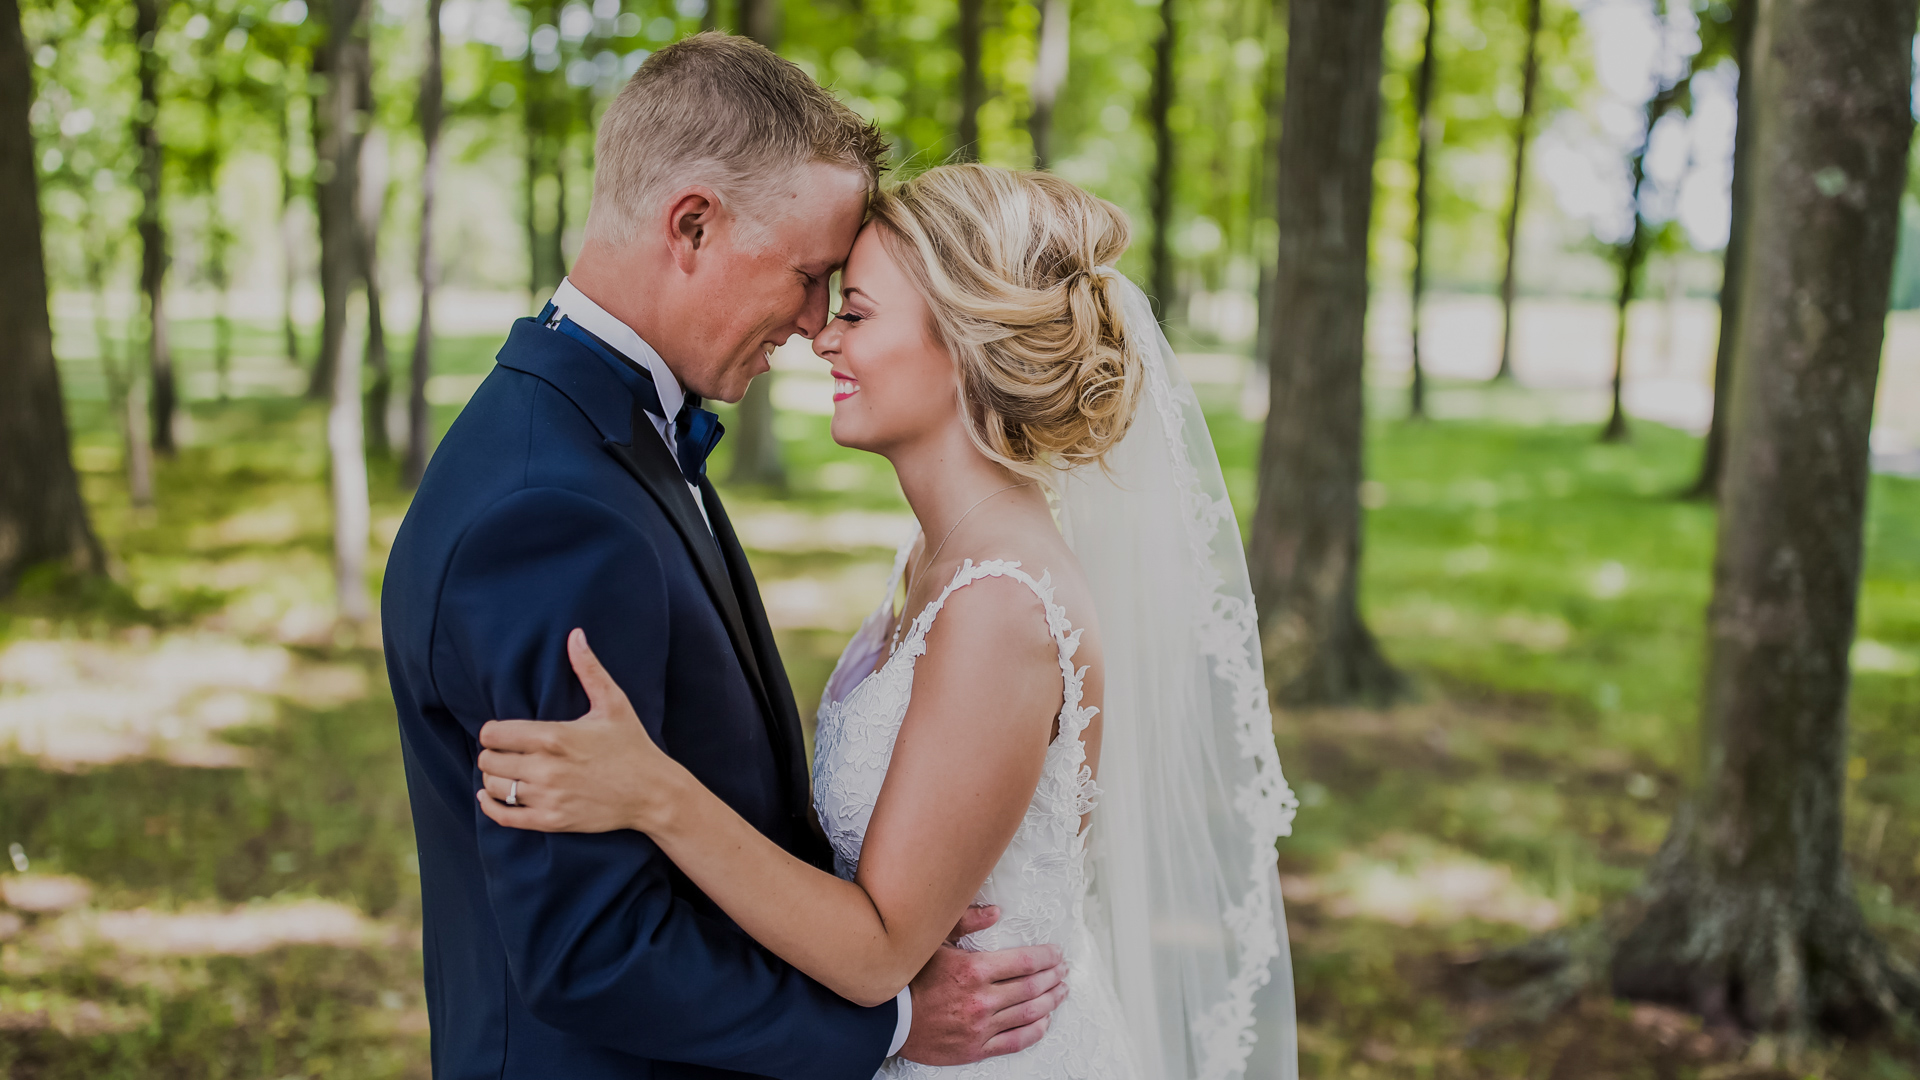 Check portfolios, pricing and availability for wedding photographers in Nashville